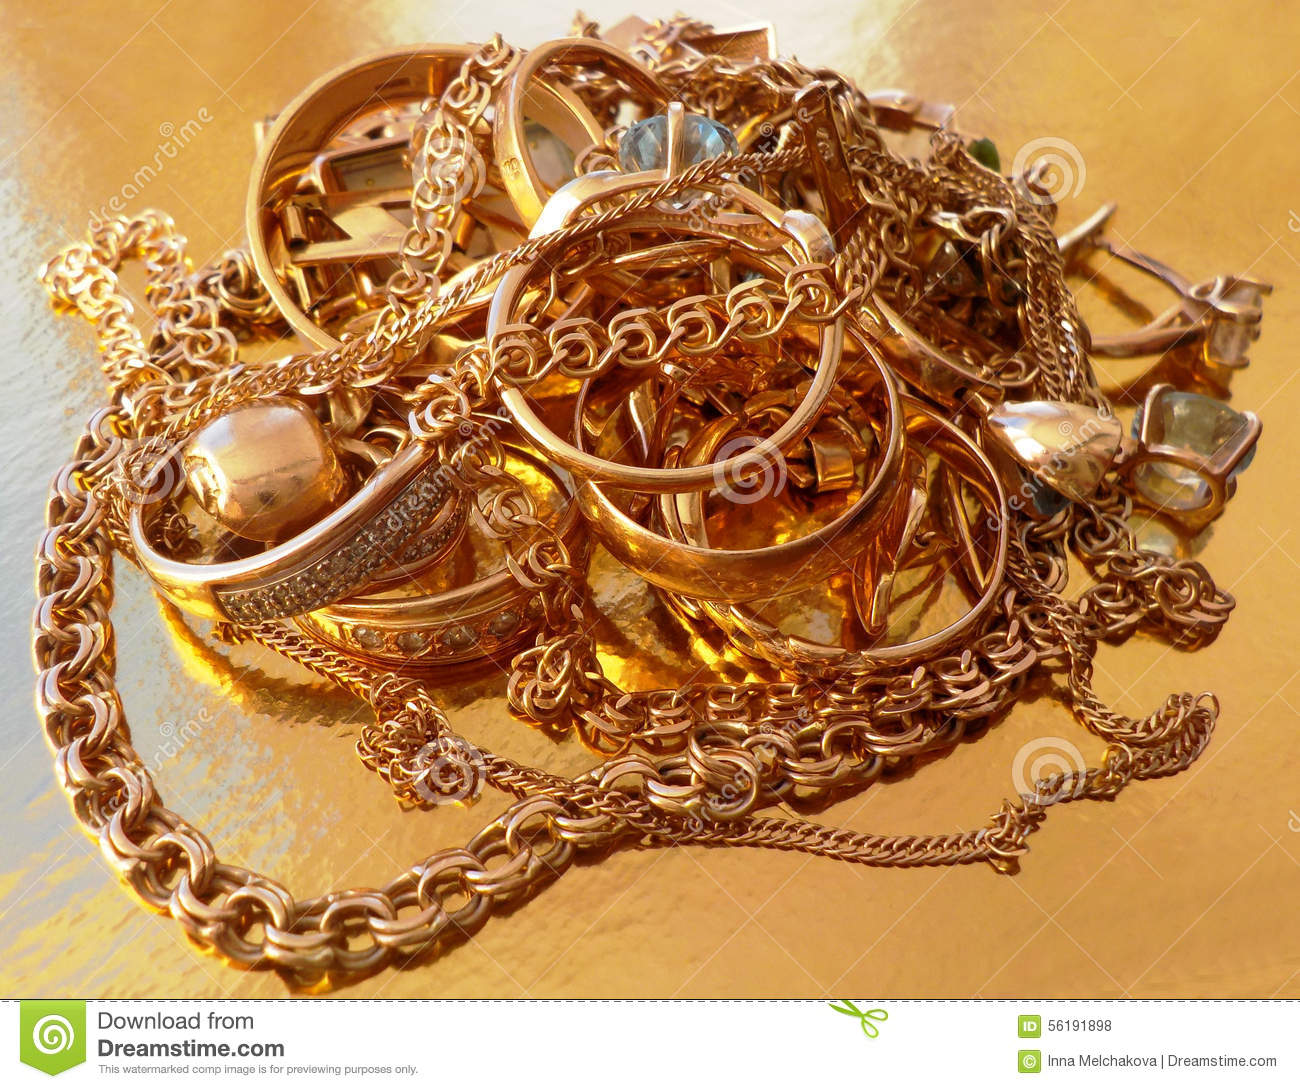 Pile of gold jewelry stock photo. Image of chain, diamond - 56191898